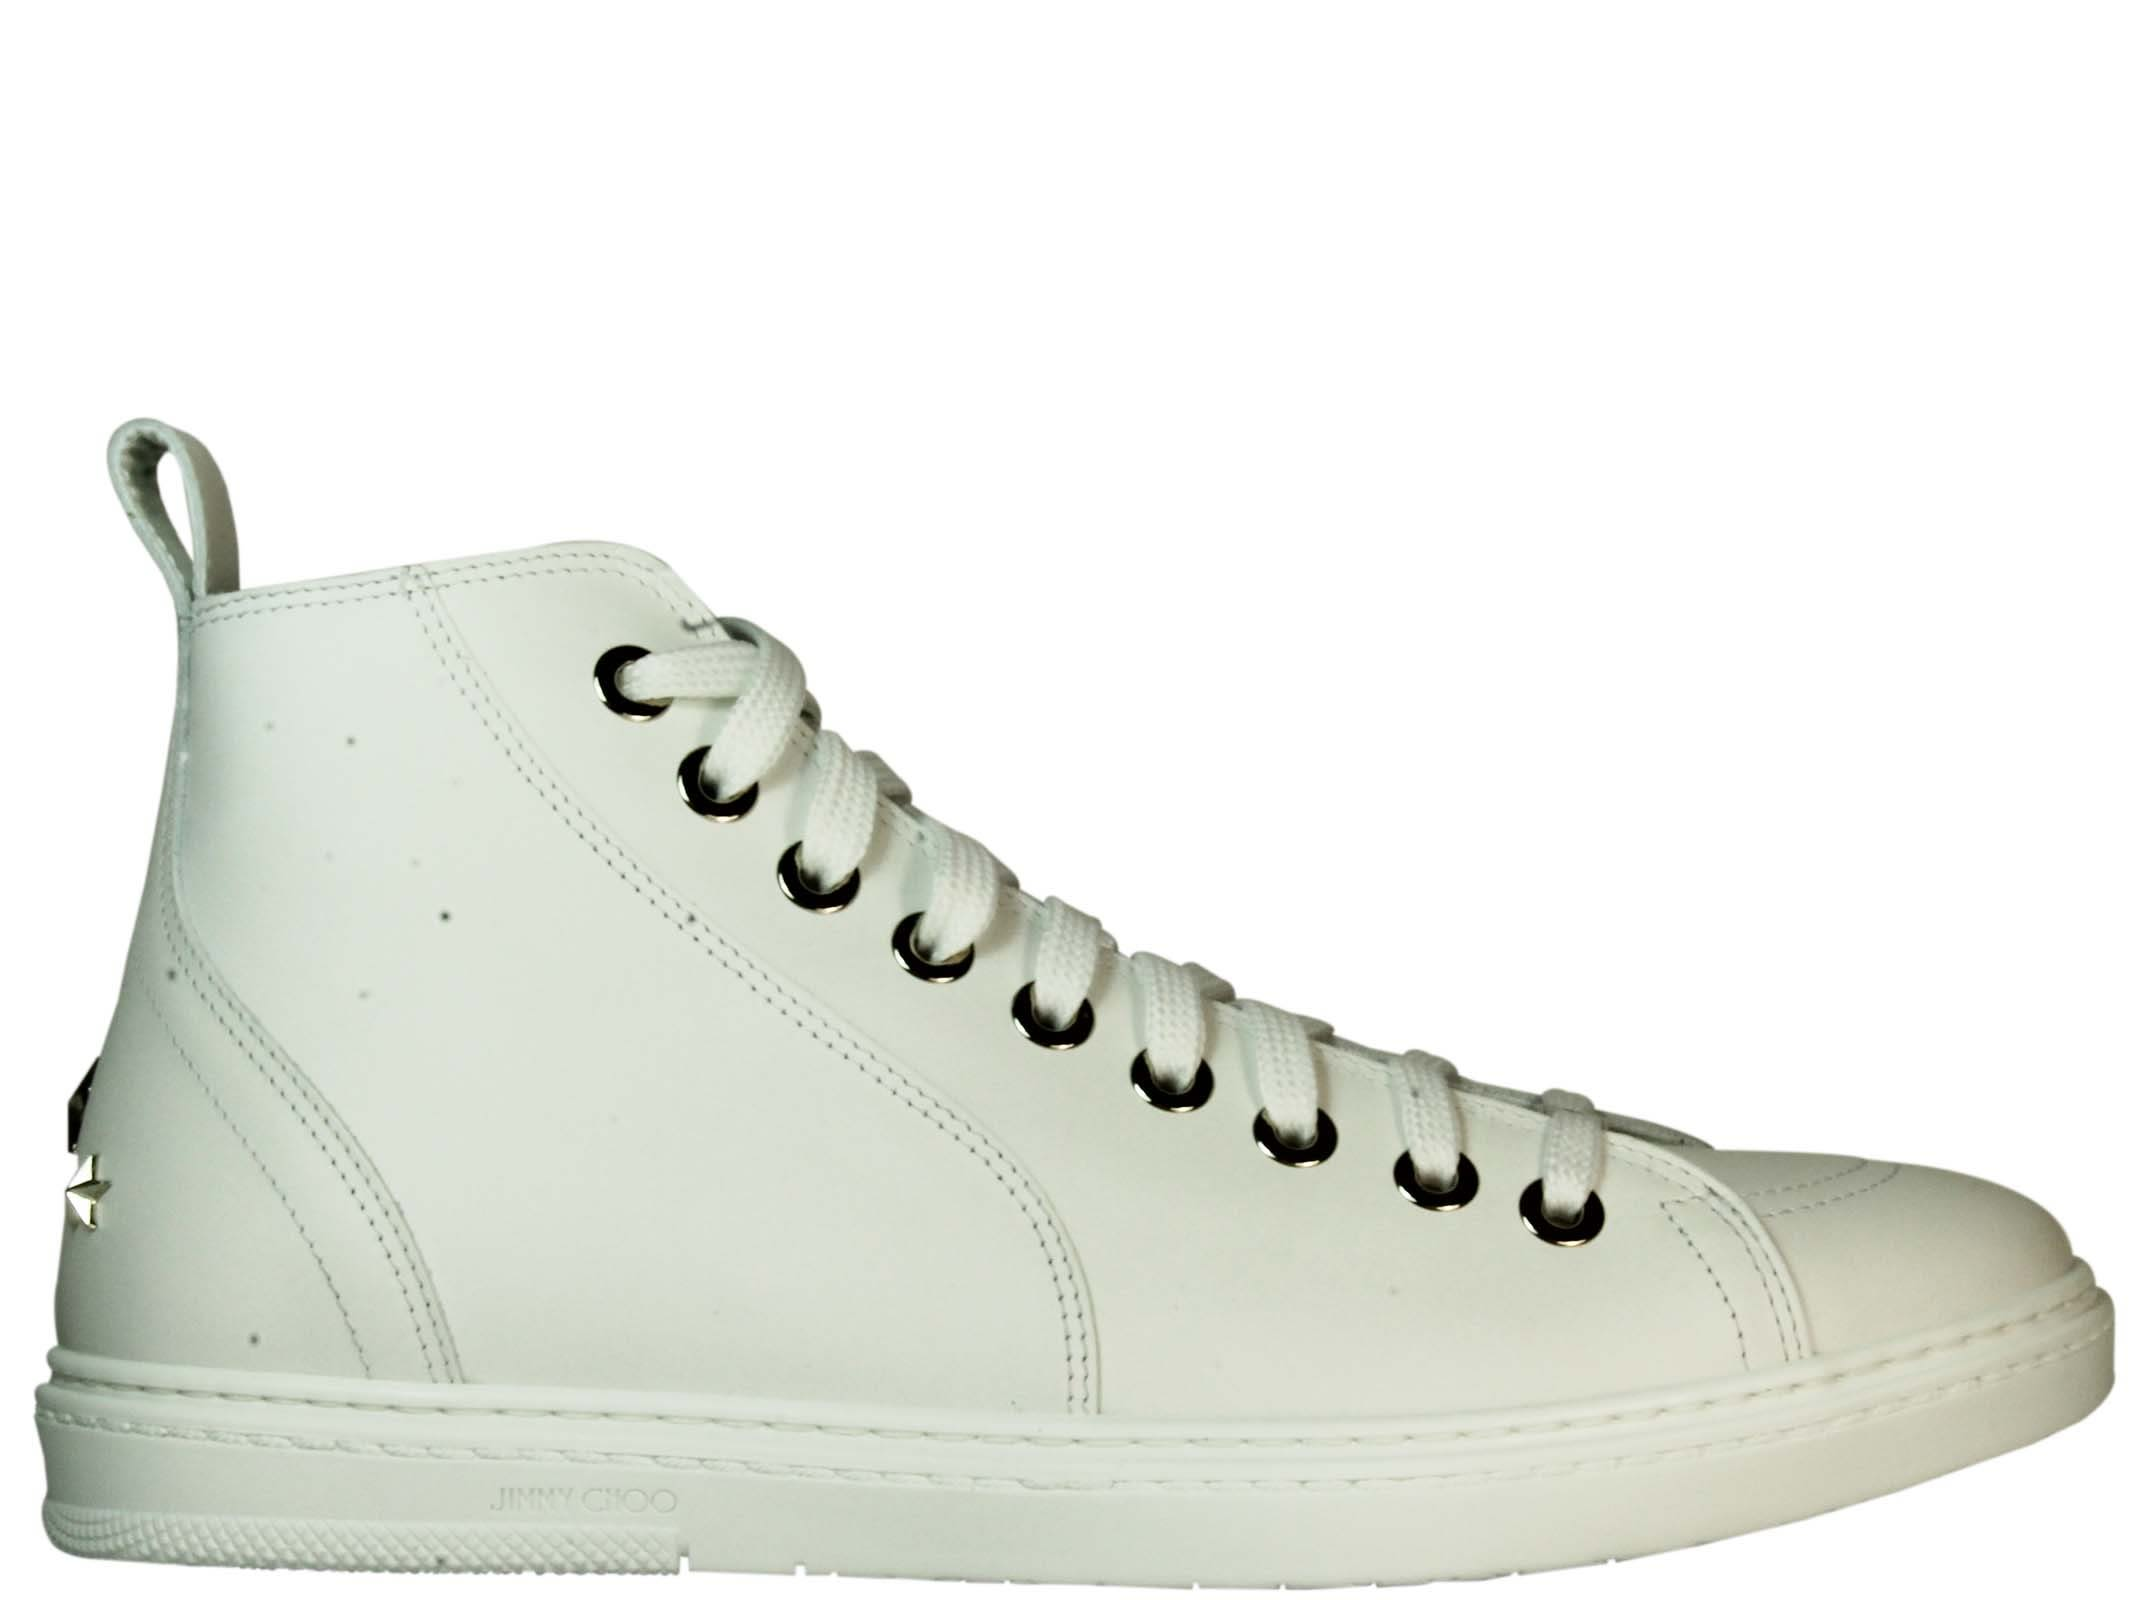 Jimmy Choo Colt White Hi-top Sneakers